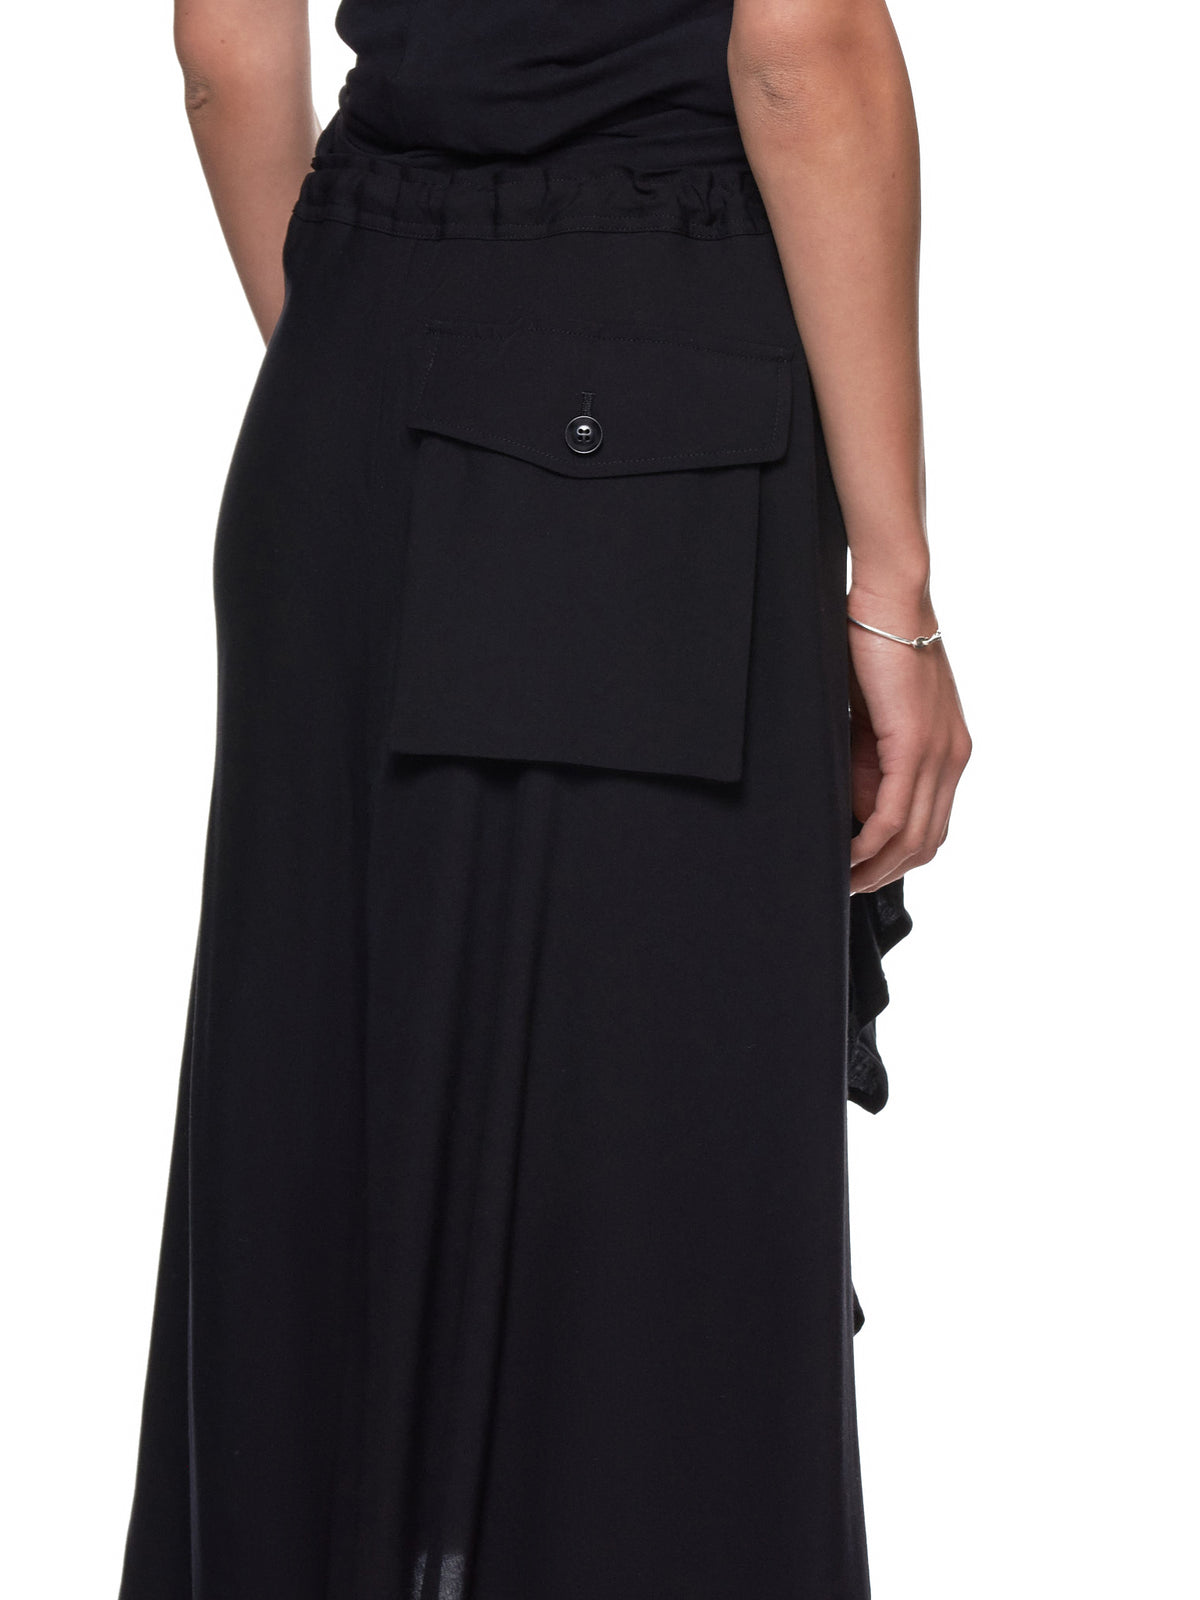 Button-Placket Skirt (YH-S06-200-BLACK)